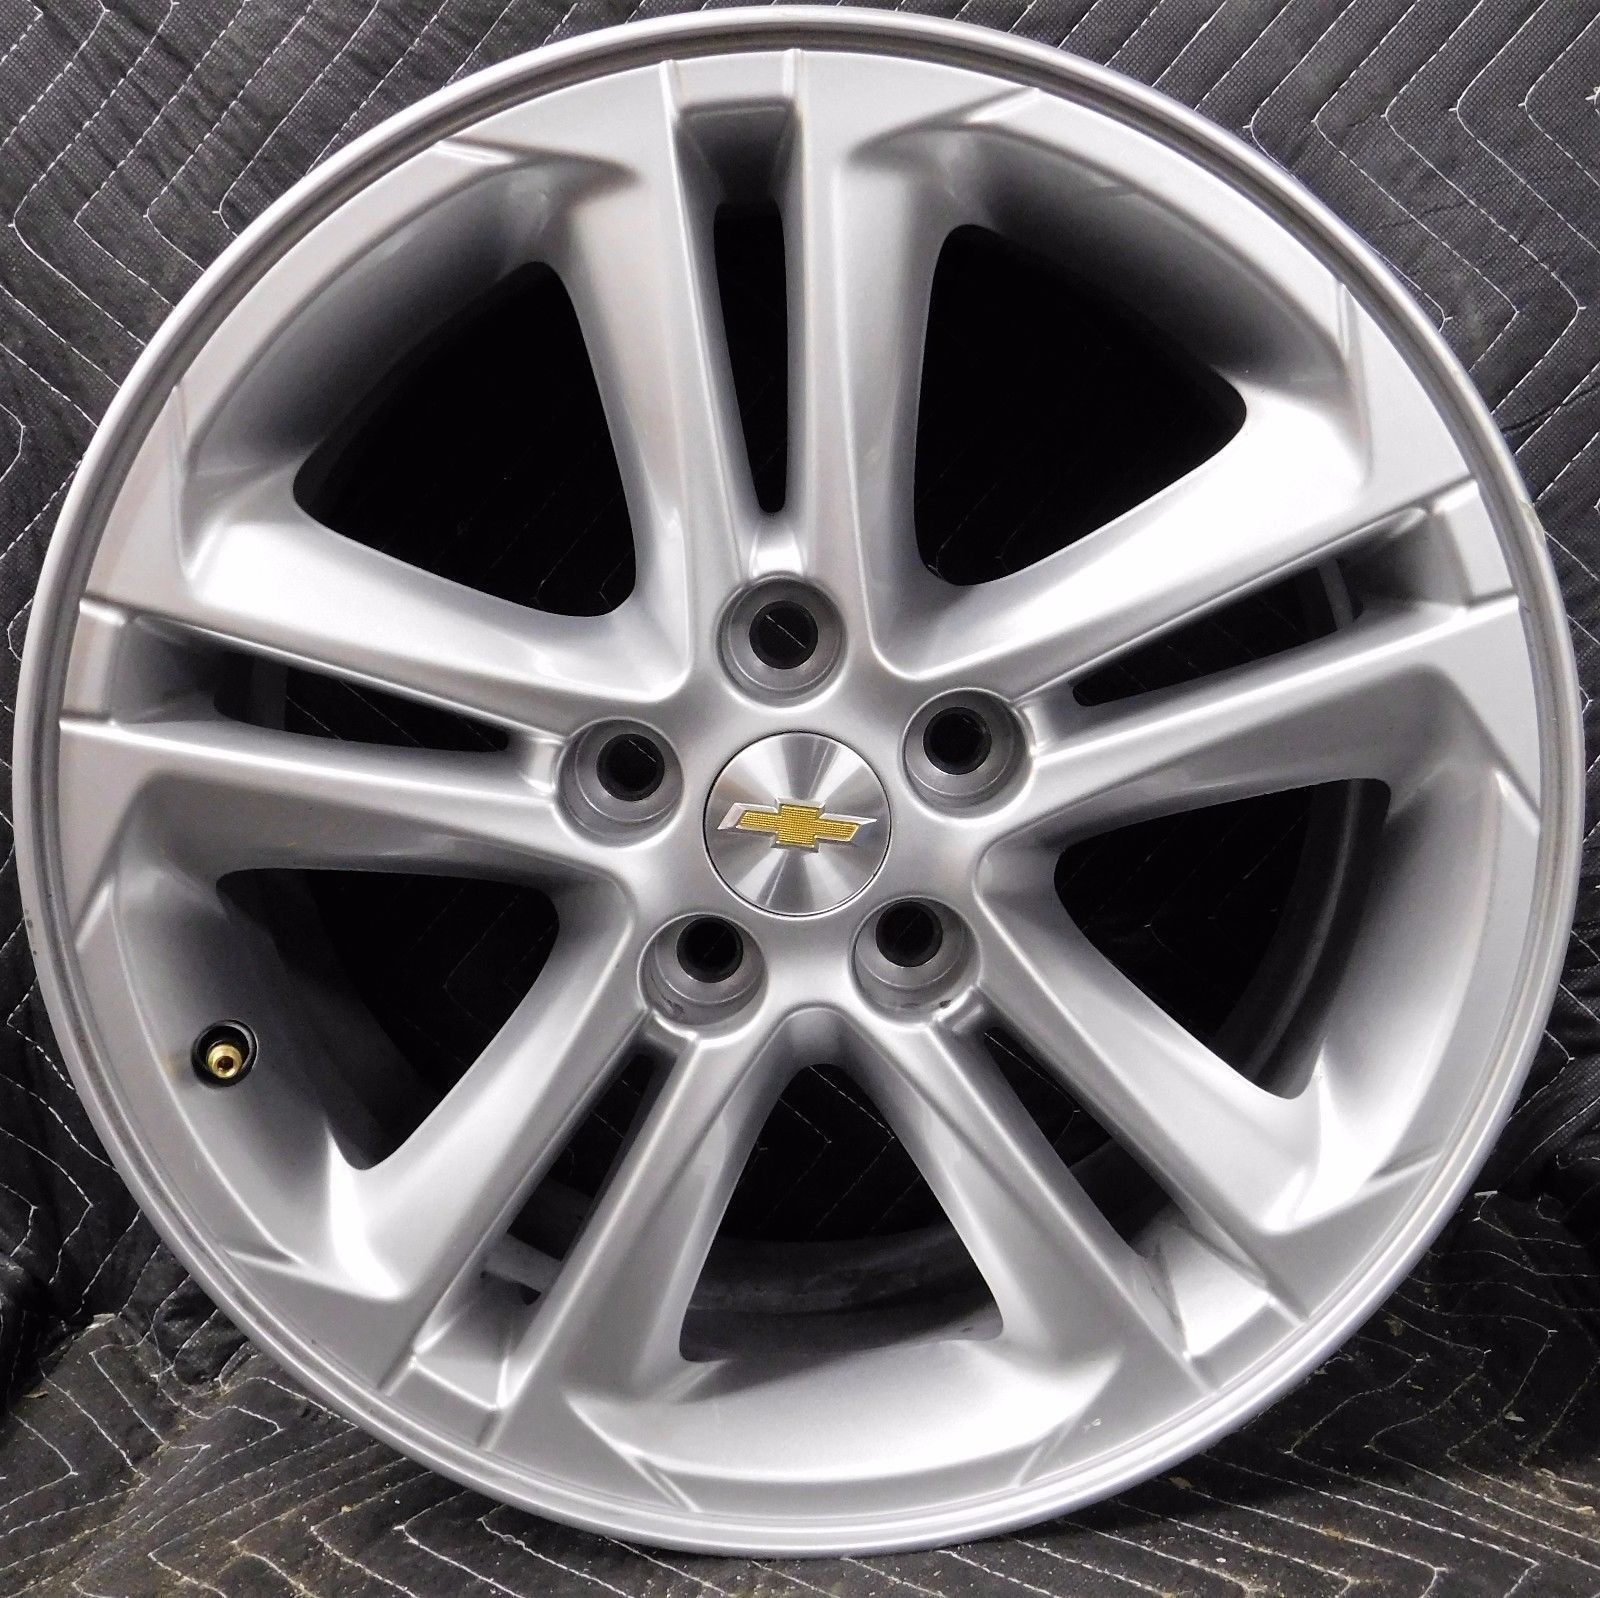 Chevy Truck Wheels >> 2016 17 Chevy Cruze OEM Factory Original 16 OE 13383410 Wheel Rim W/Center Cap | Car and Truck ...